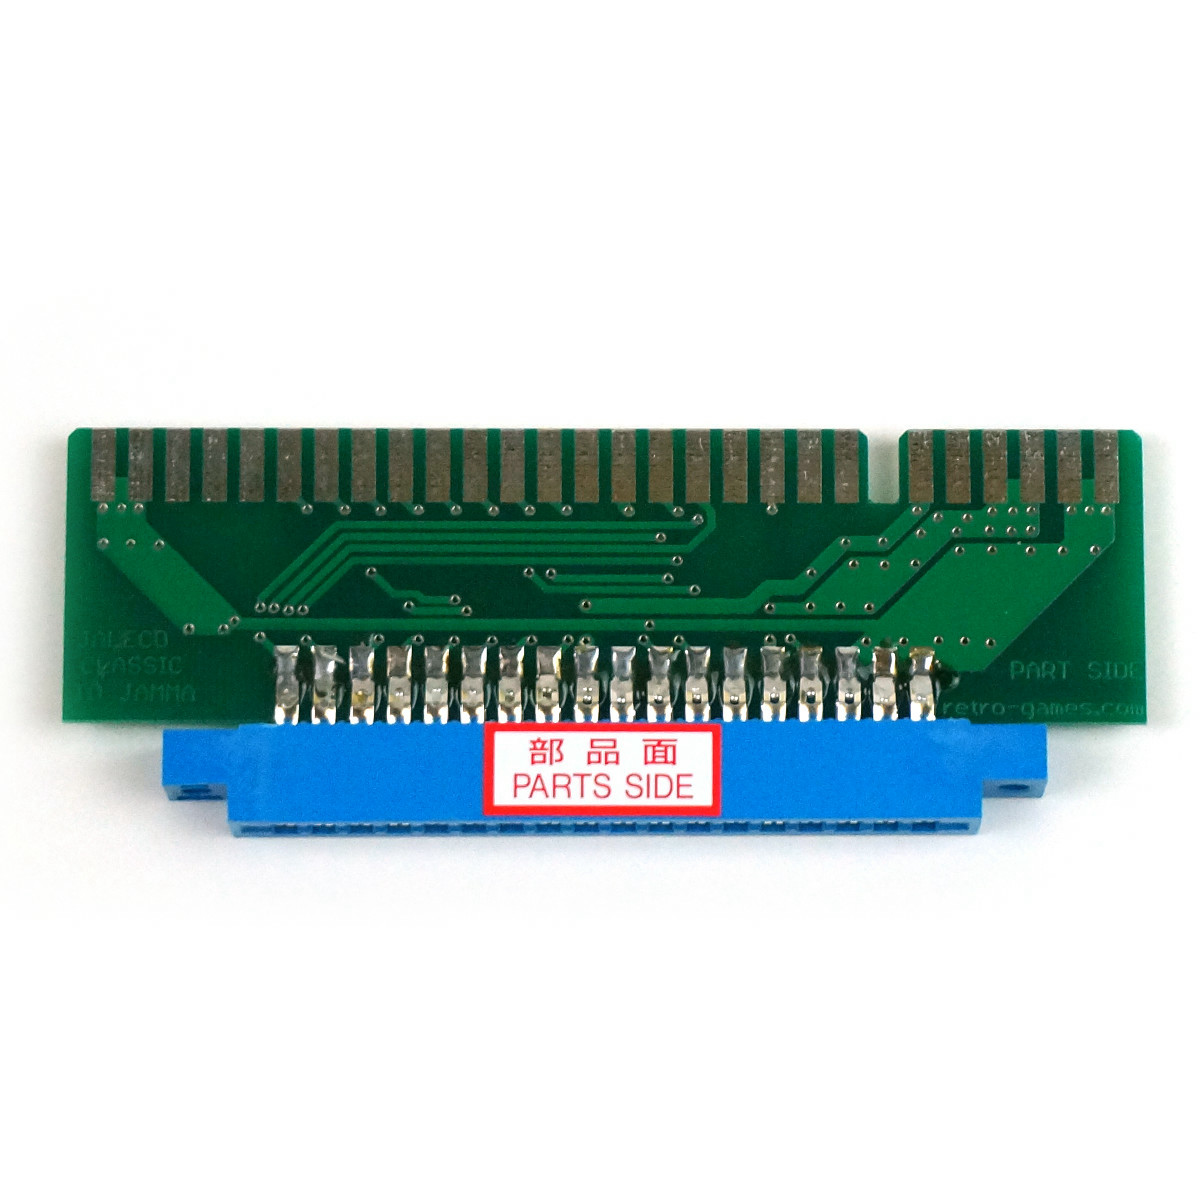 Jaleco to JAMMA Adapter